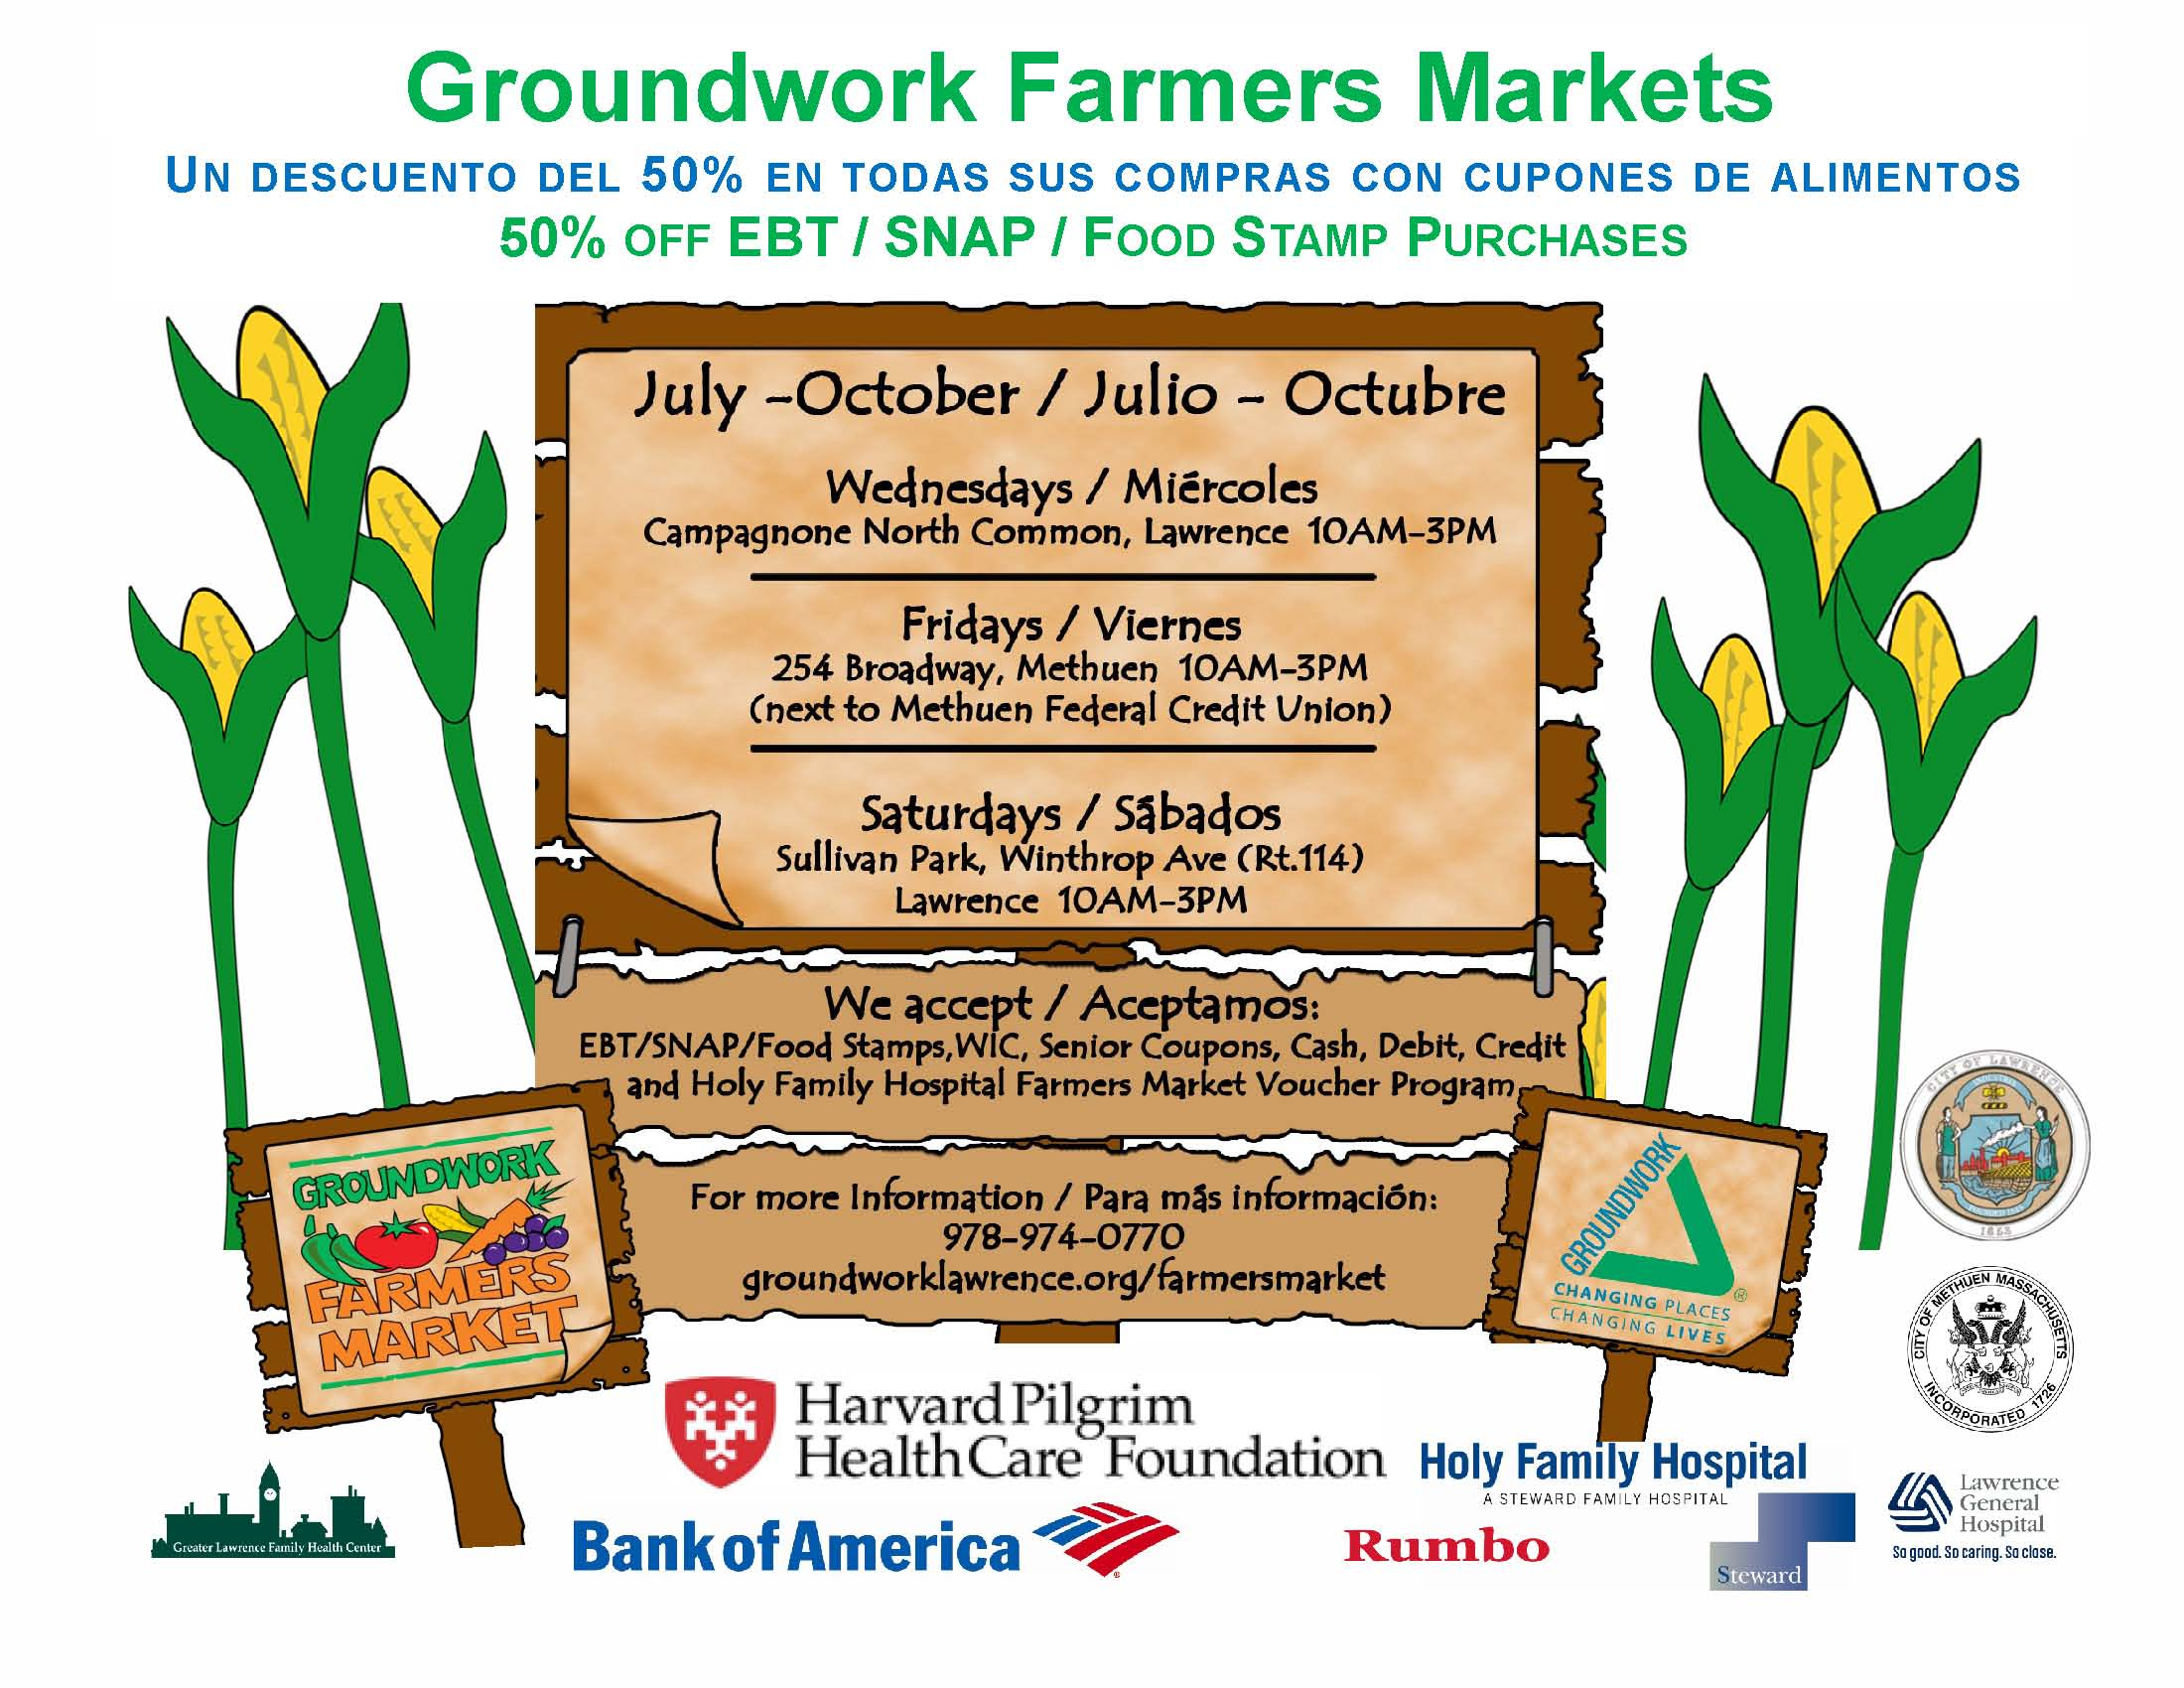 Groundwork Farmers Markets